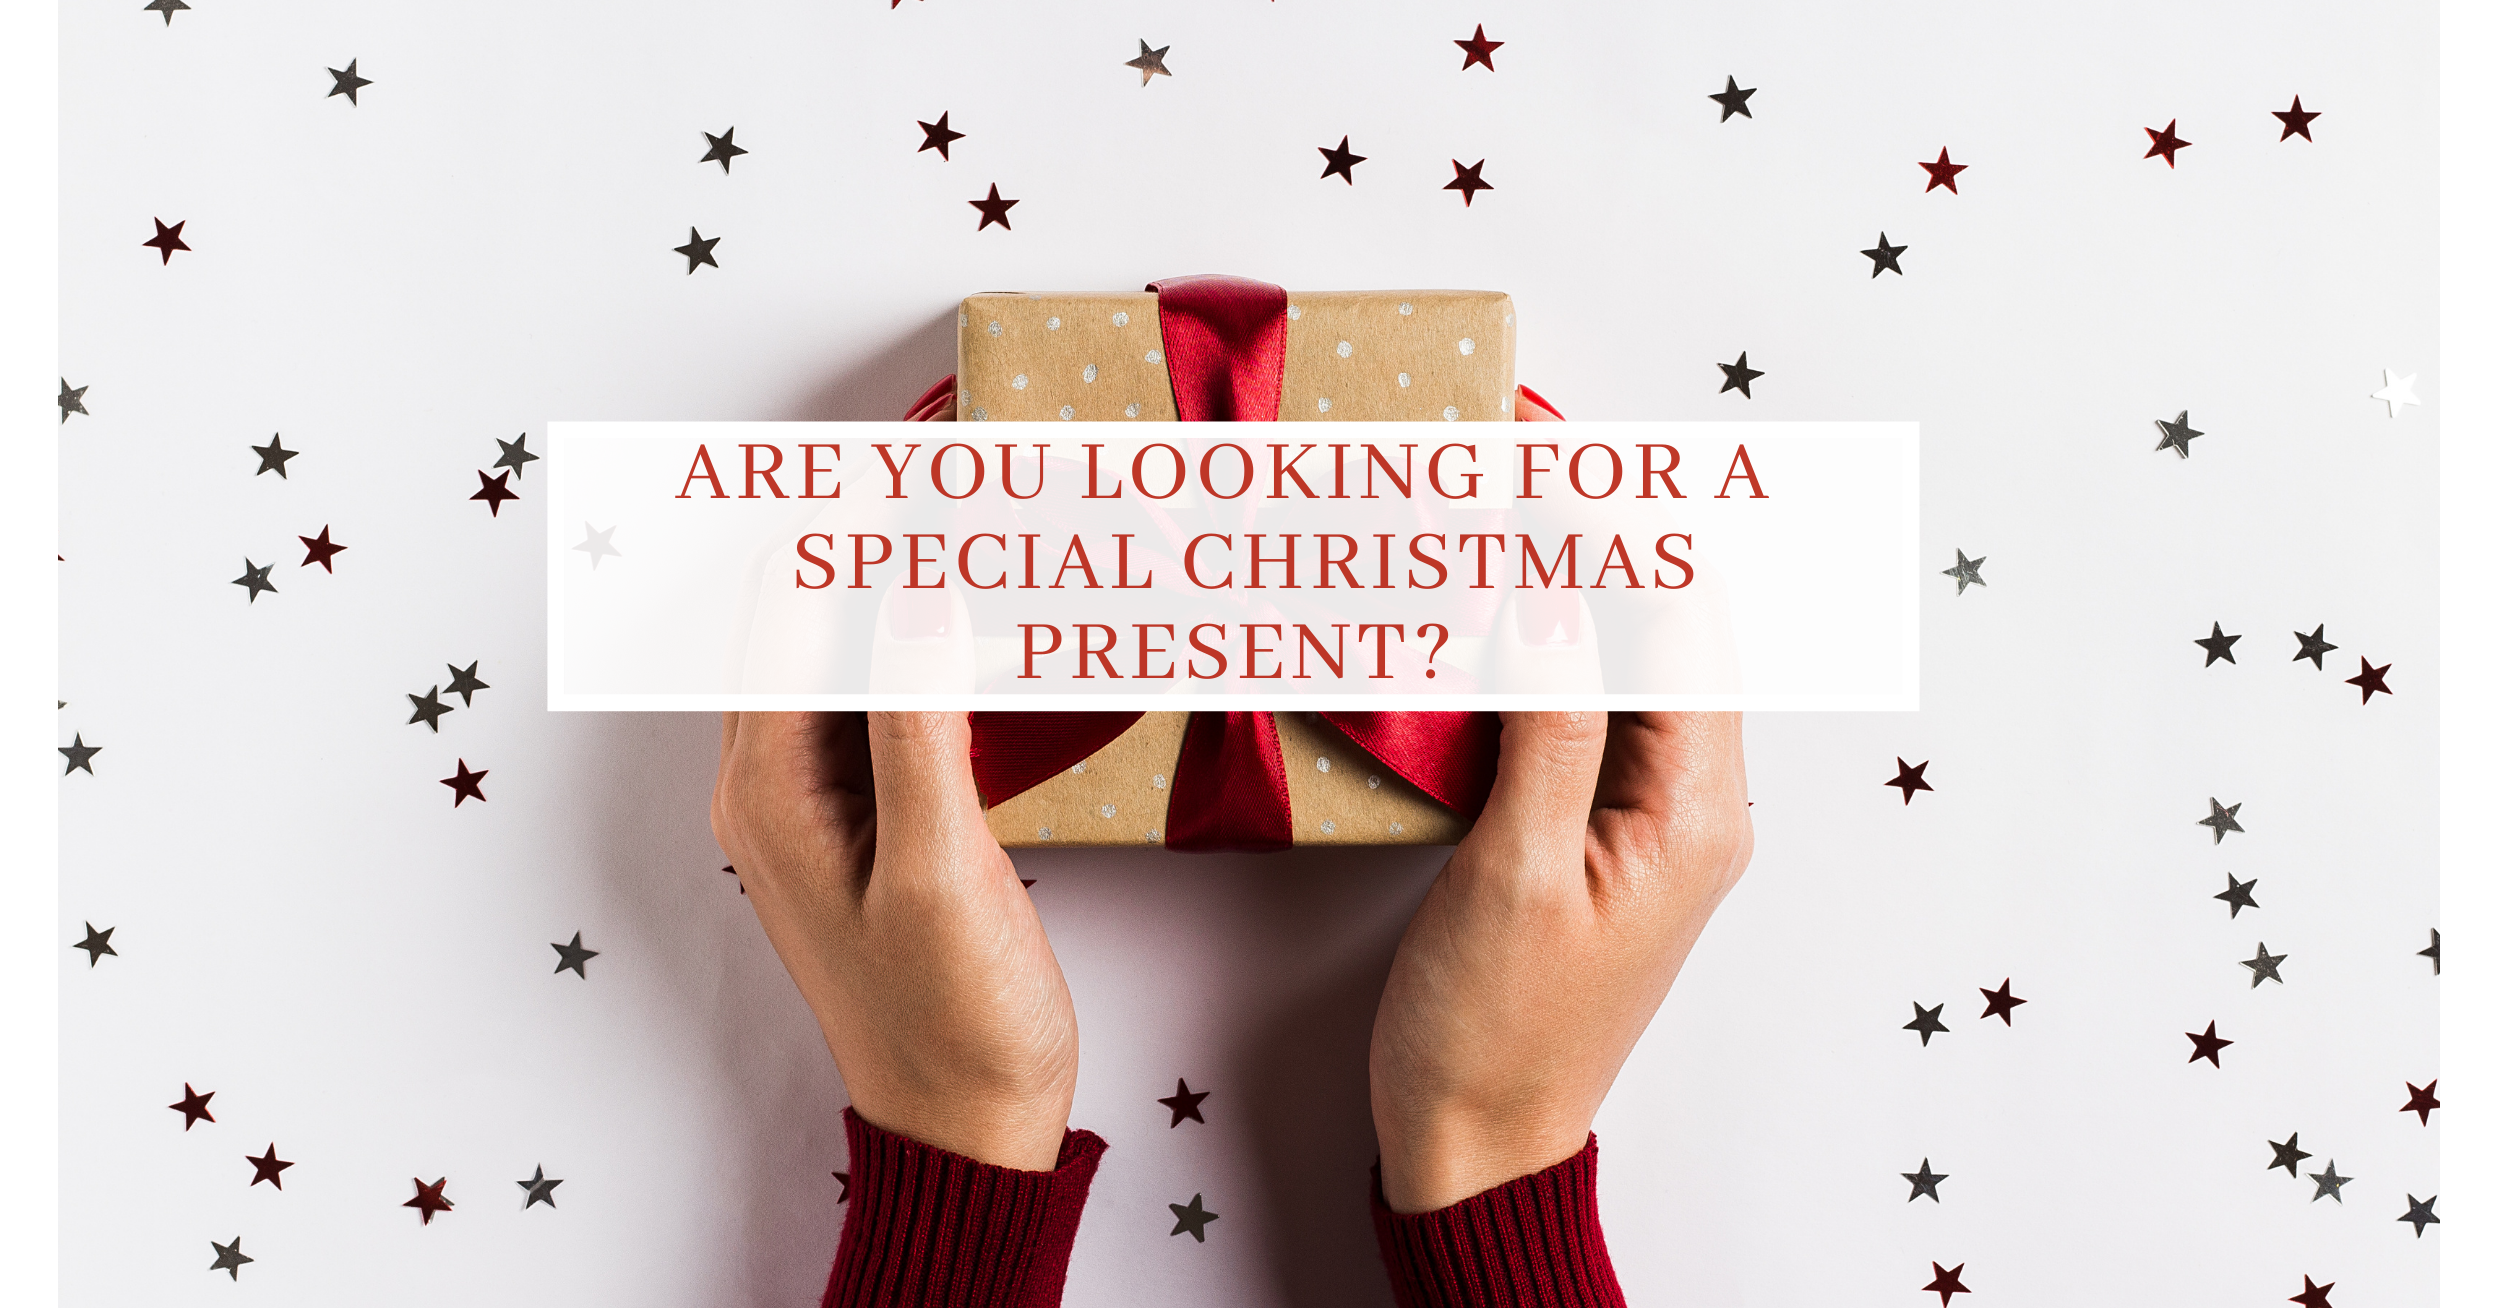 Are you looking for a special Christmas present?